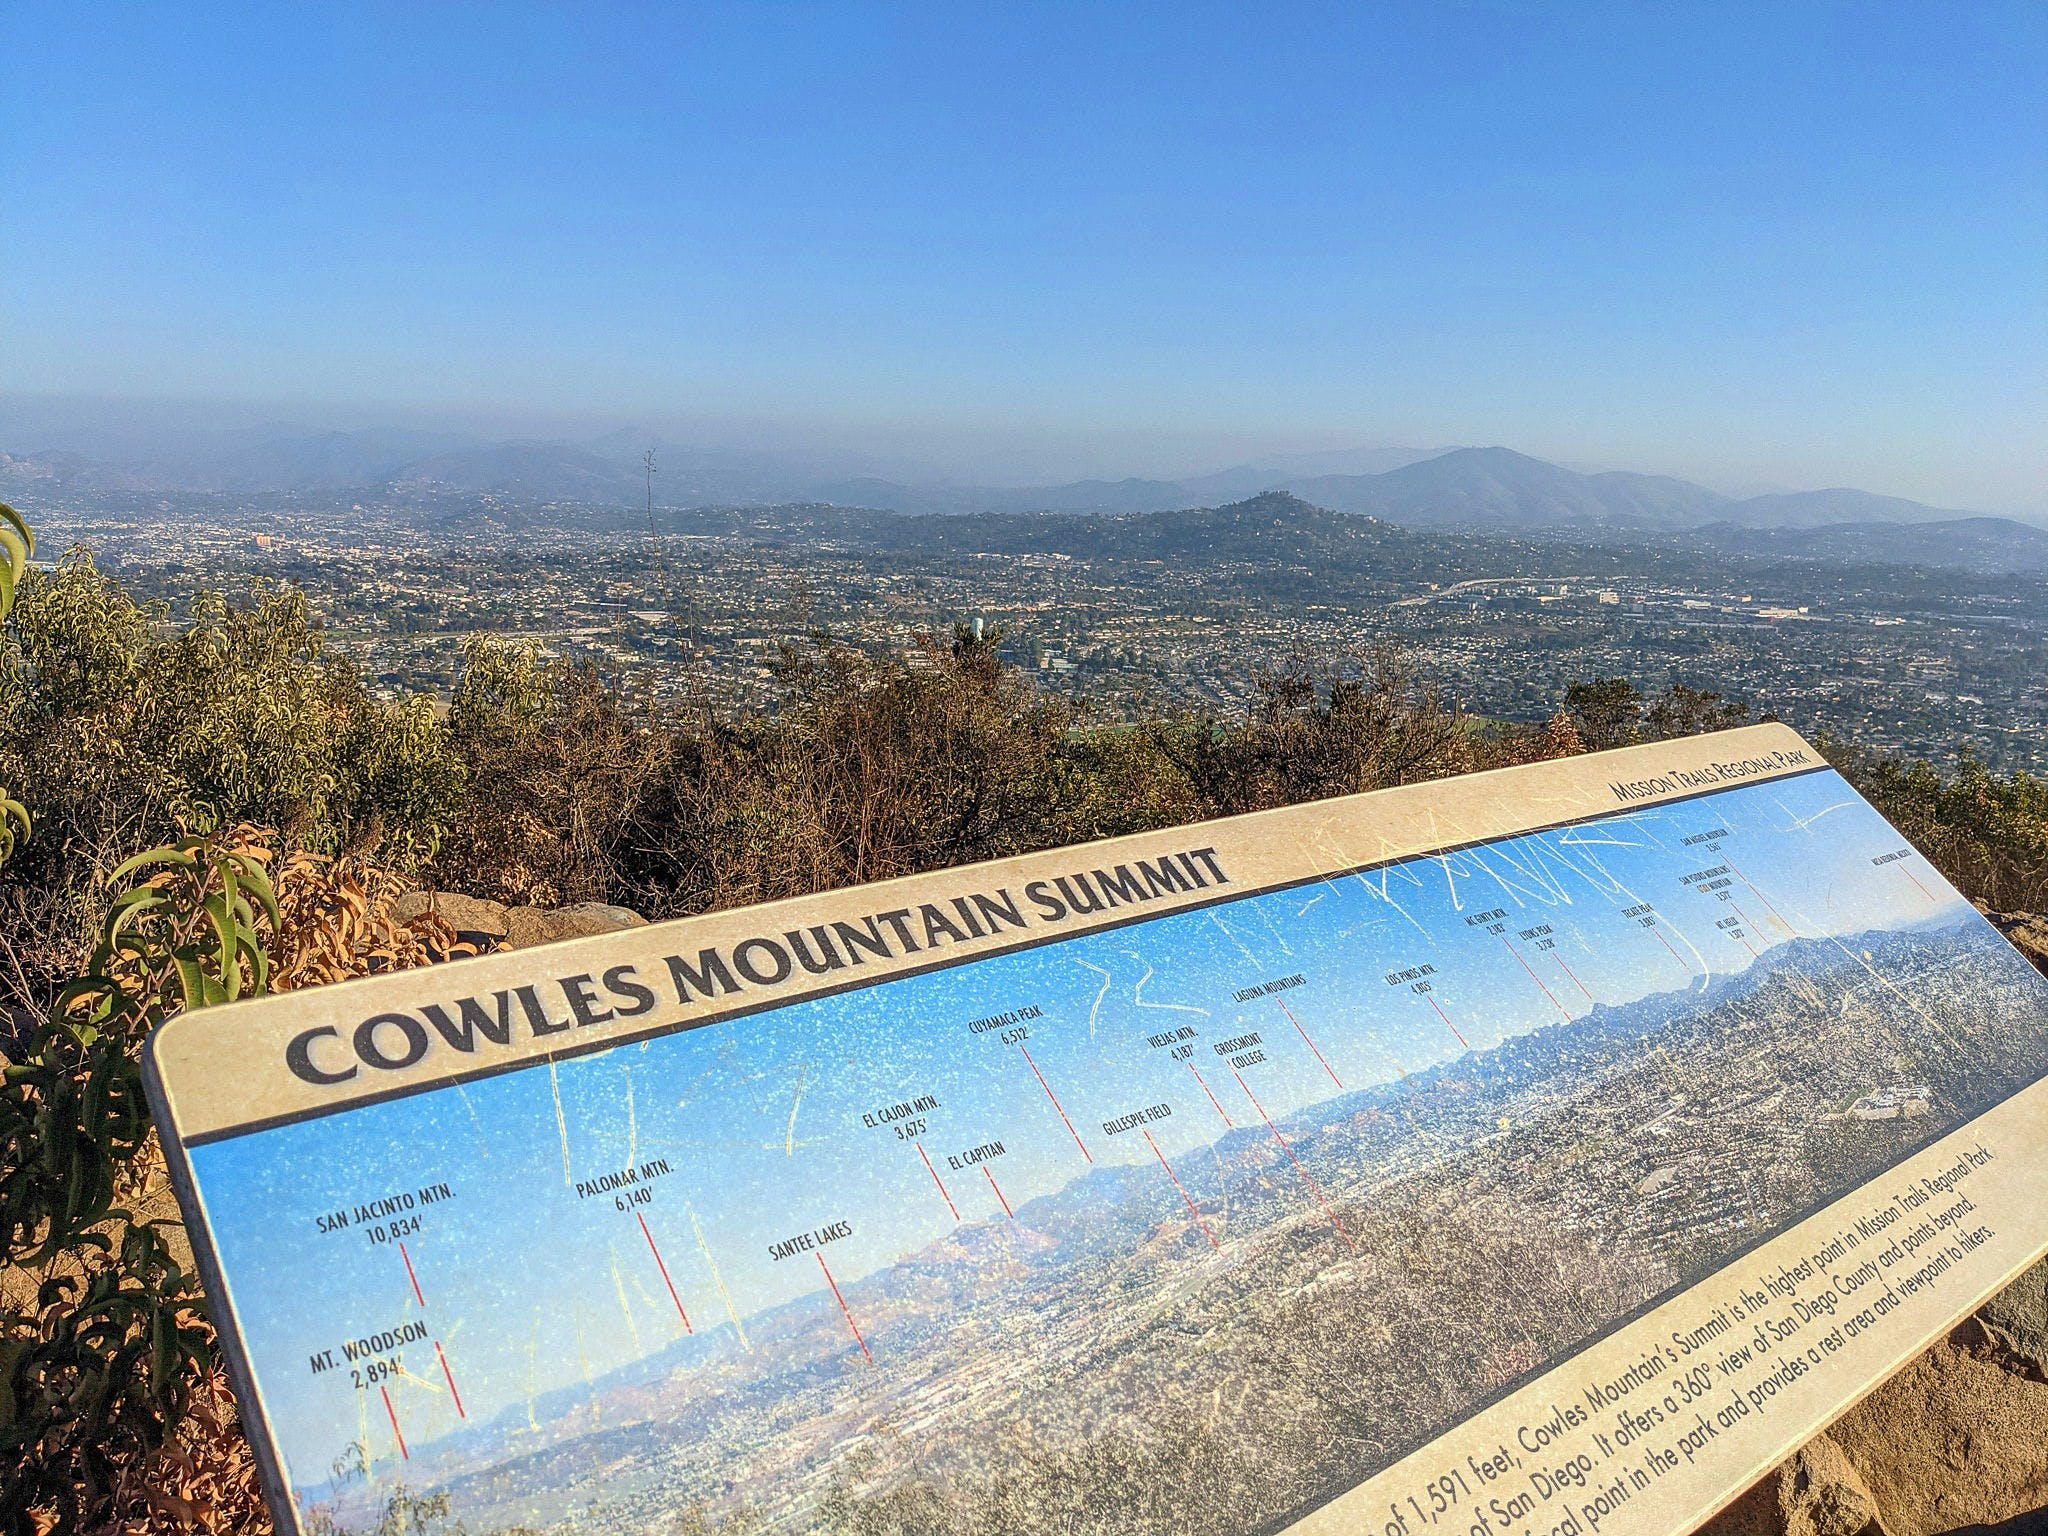 Sign at the top of Mount Cowles summit in San Diego